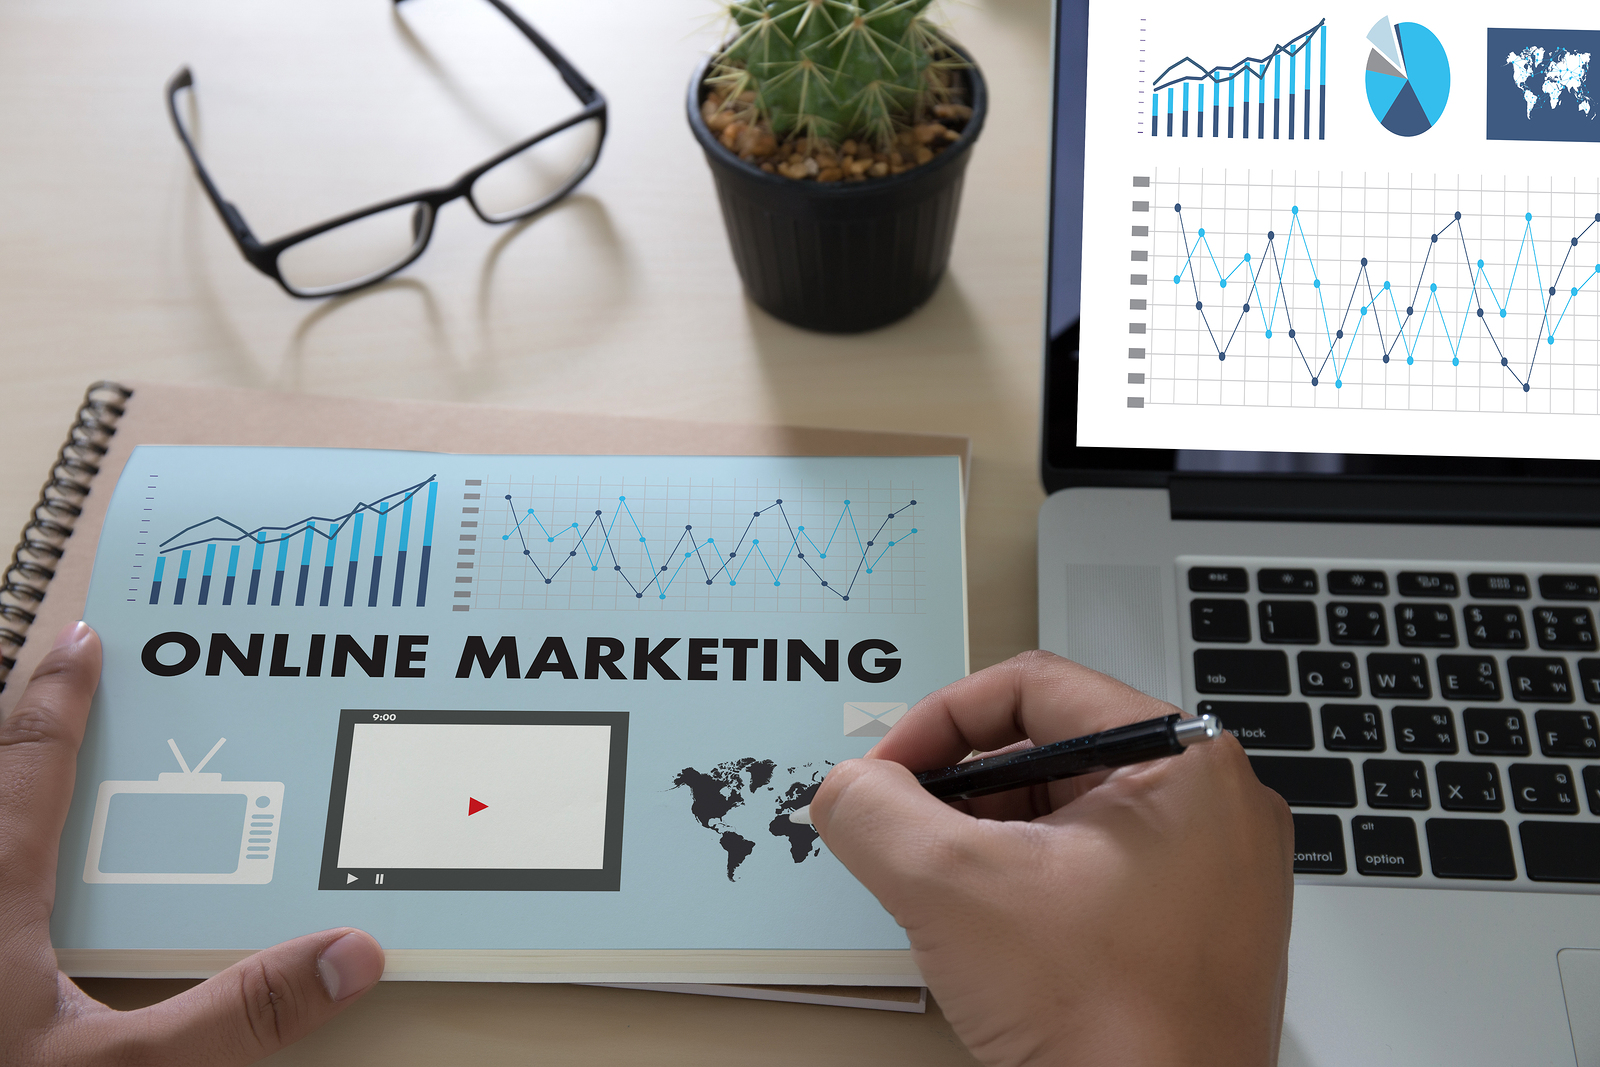 Online marketing in Melbourne, seo professional melbourne | SEO Toorak